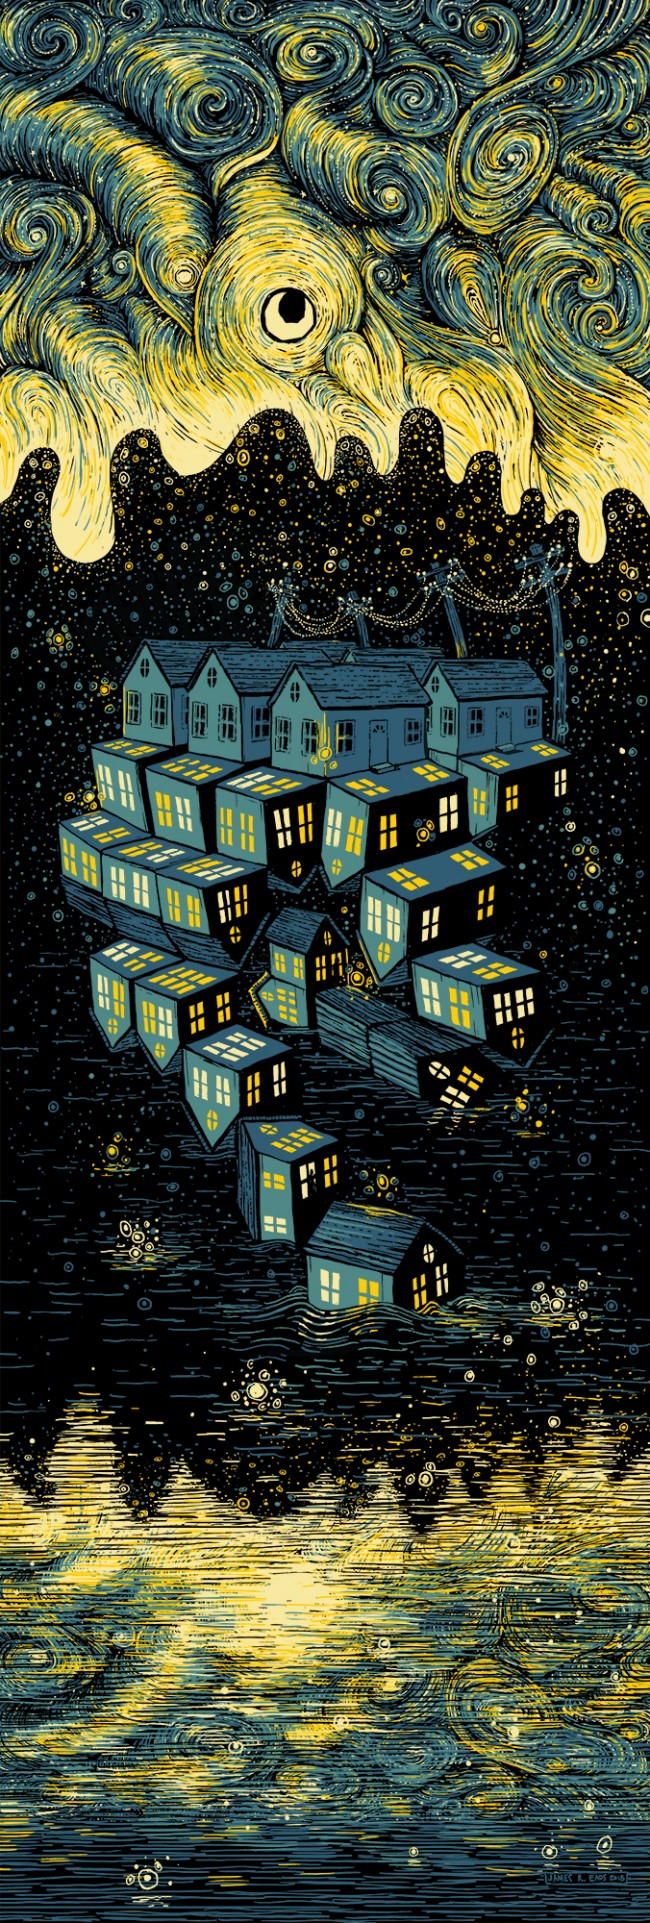 """The Neighborhood Unfolding"" by James R Eads.  12"" x 36"" 4-color Screenprint.  Ed of 60 S/N.  $50"